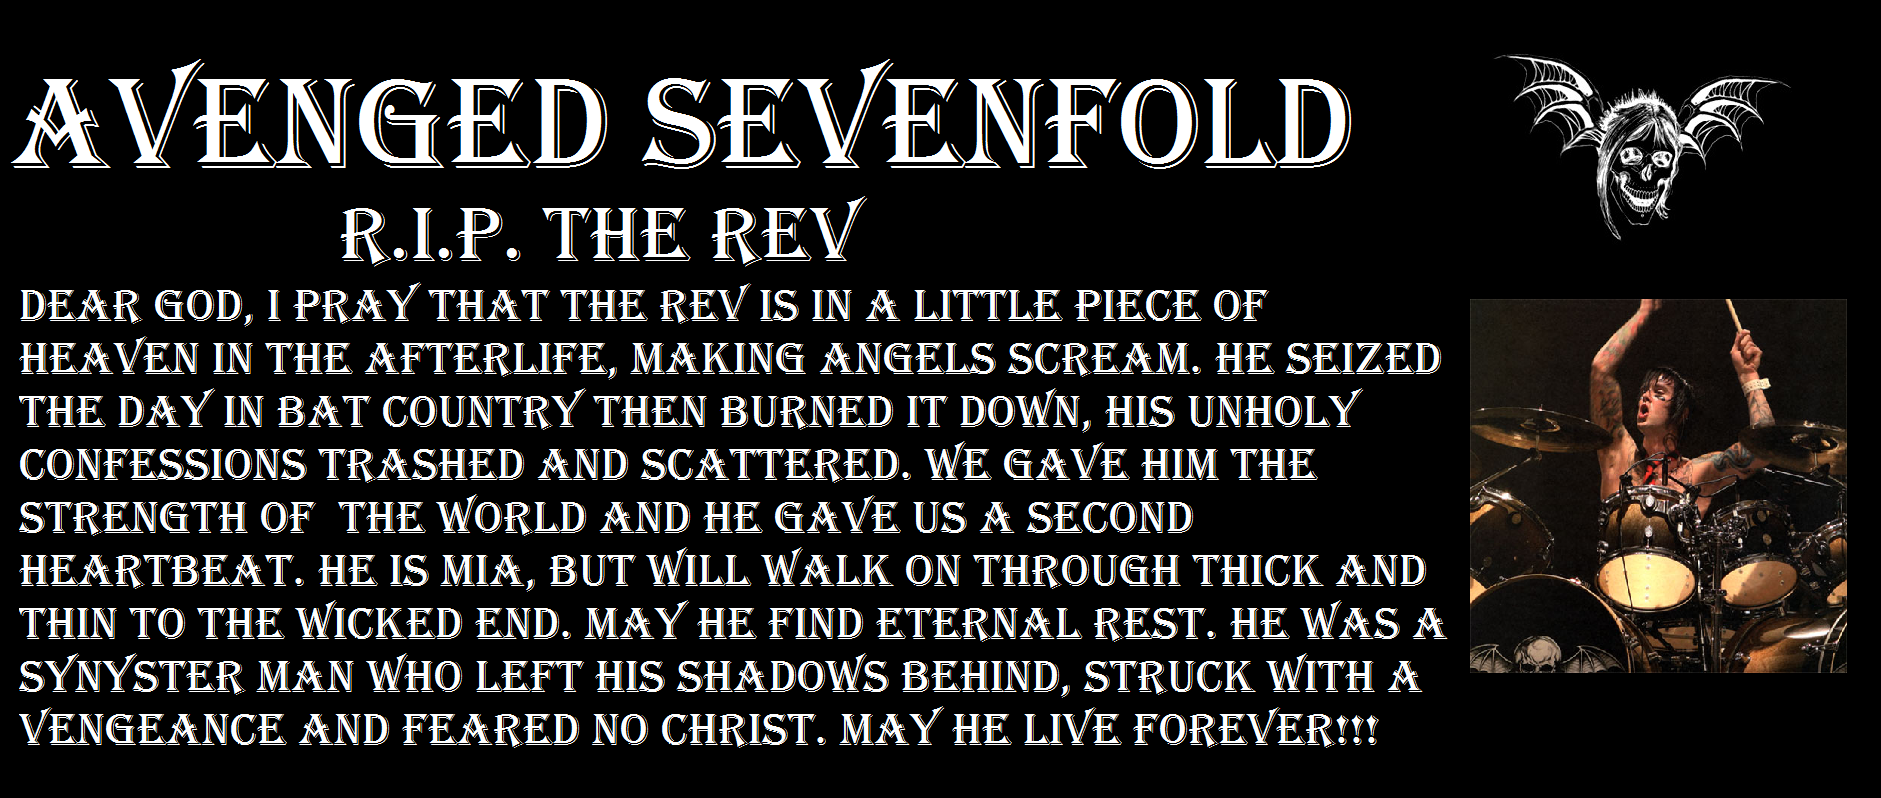 R.I.P. The REV by a7x-kjh on DeviantArt